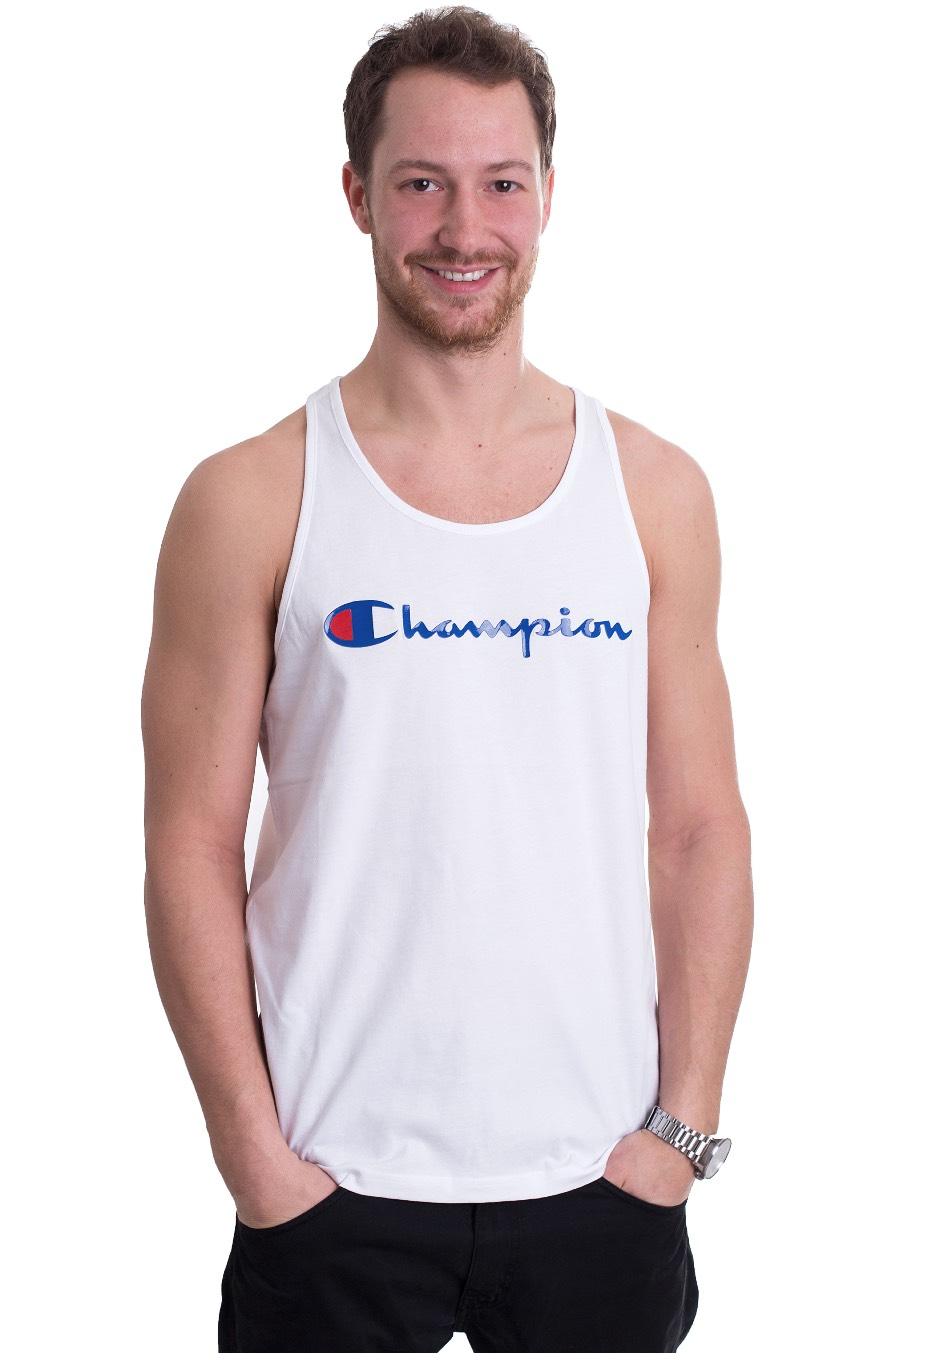 7267795bb736 Champion - Tank Top White - Tank - Streetwear Shop - Impericon.com UK